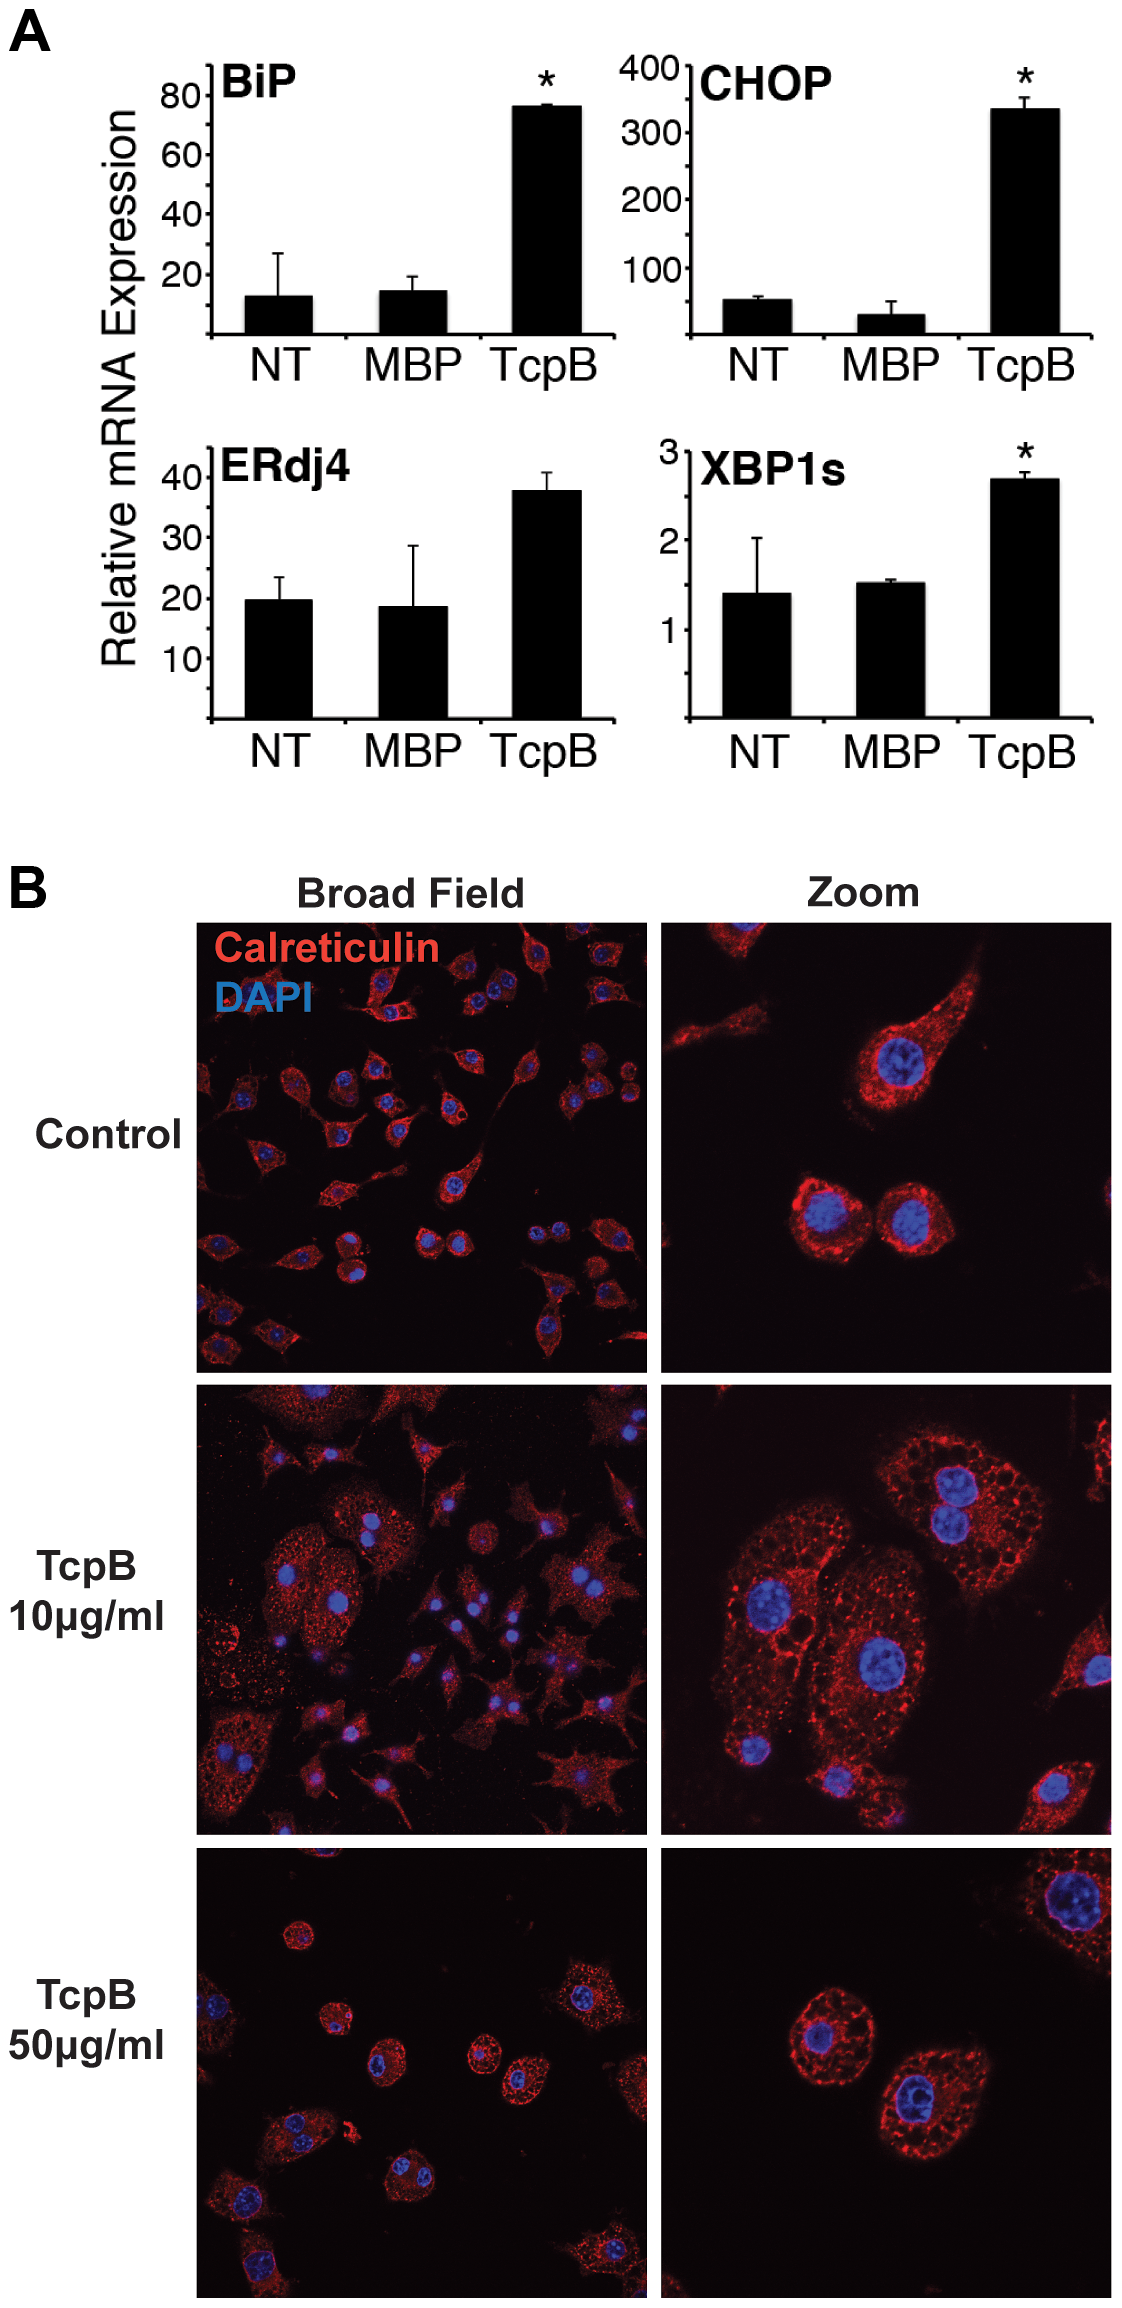 TcpB protein induces UPR and ER restructuring.